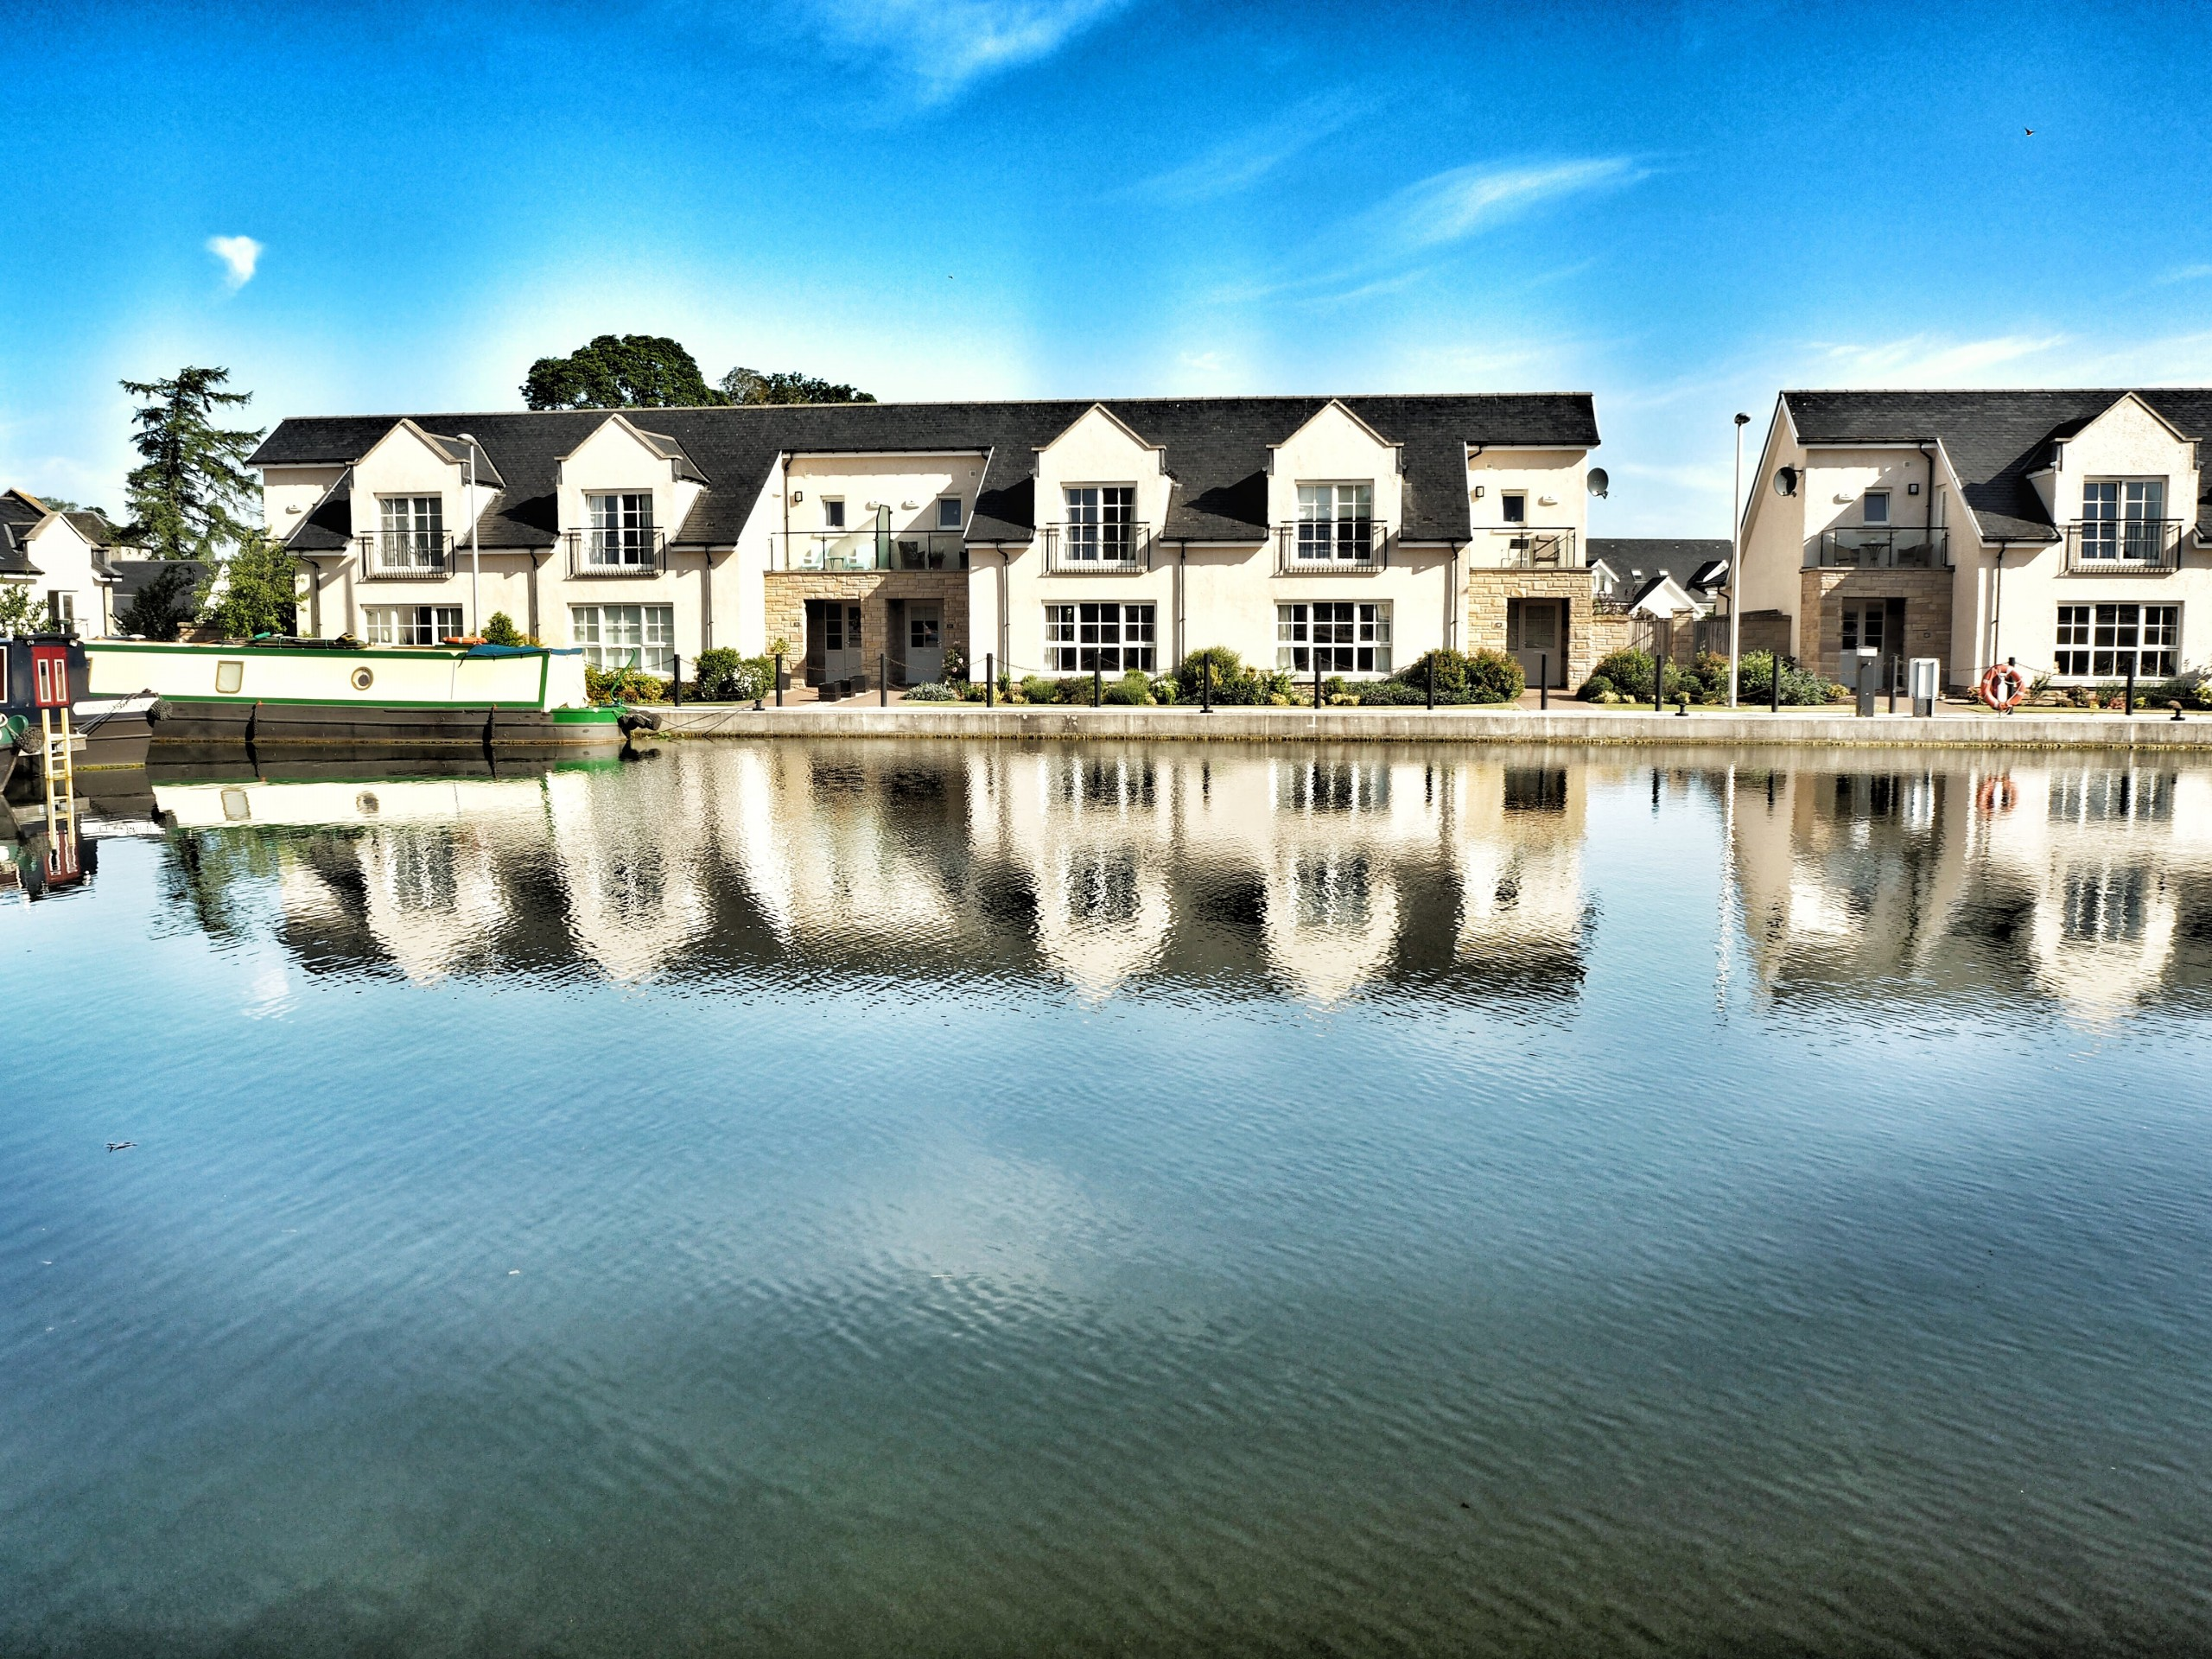 Row of houses in front of a lake